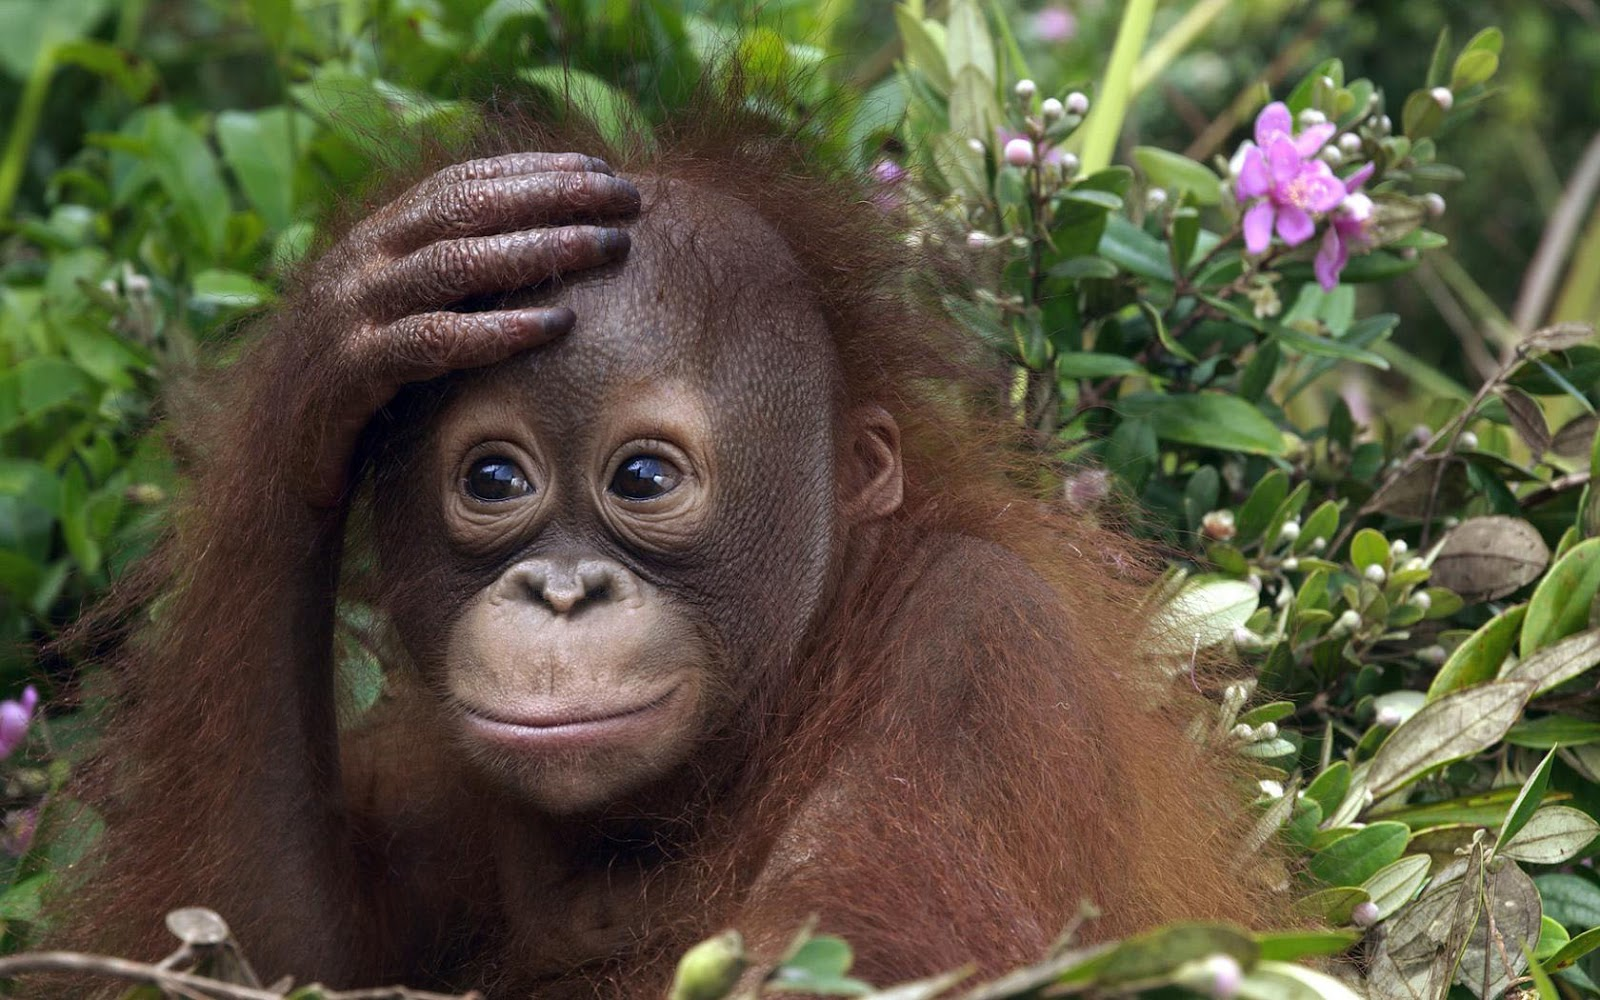 HD Animals Wallpaper Of A Cute Orangutan Baby | HD Monkeys Wallpapers Wallpaper